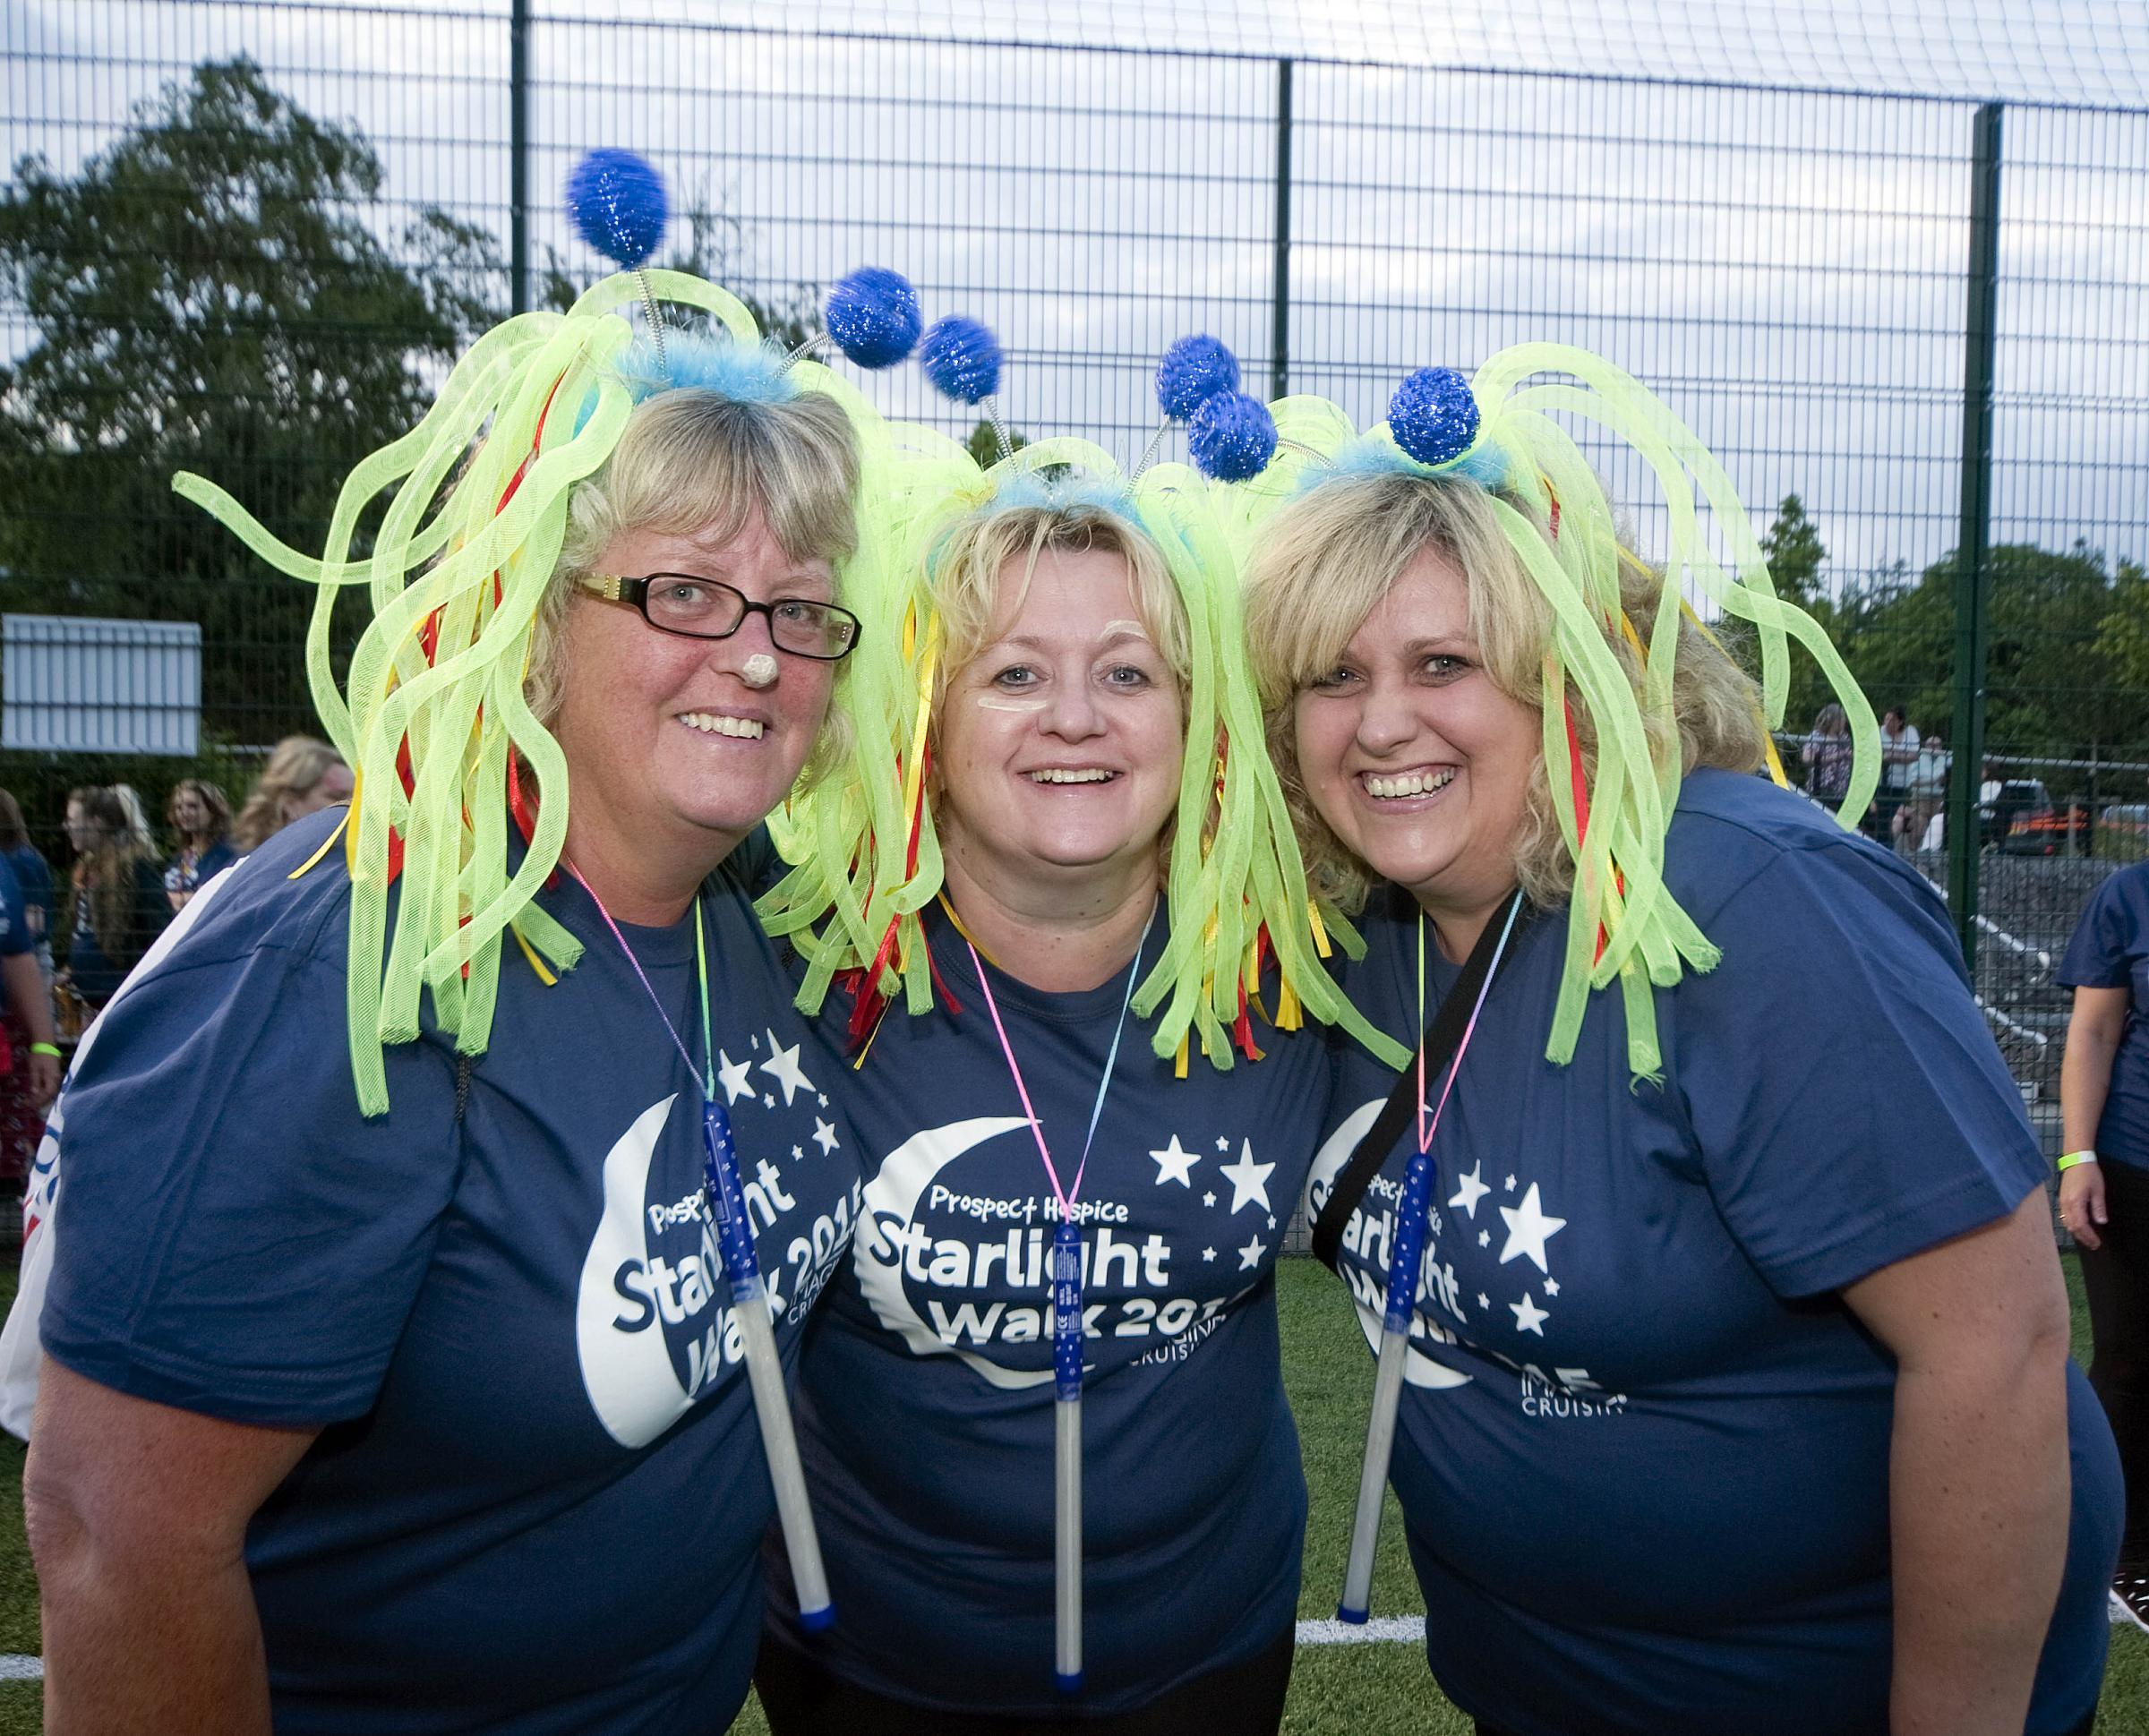 ©Calyx Pictures..Starlight Walk.5K walkers.Julie JonesRachel KellyNicki Taylor.